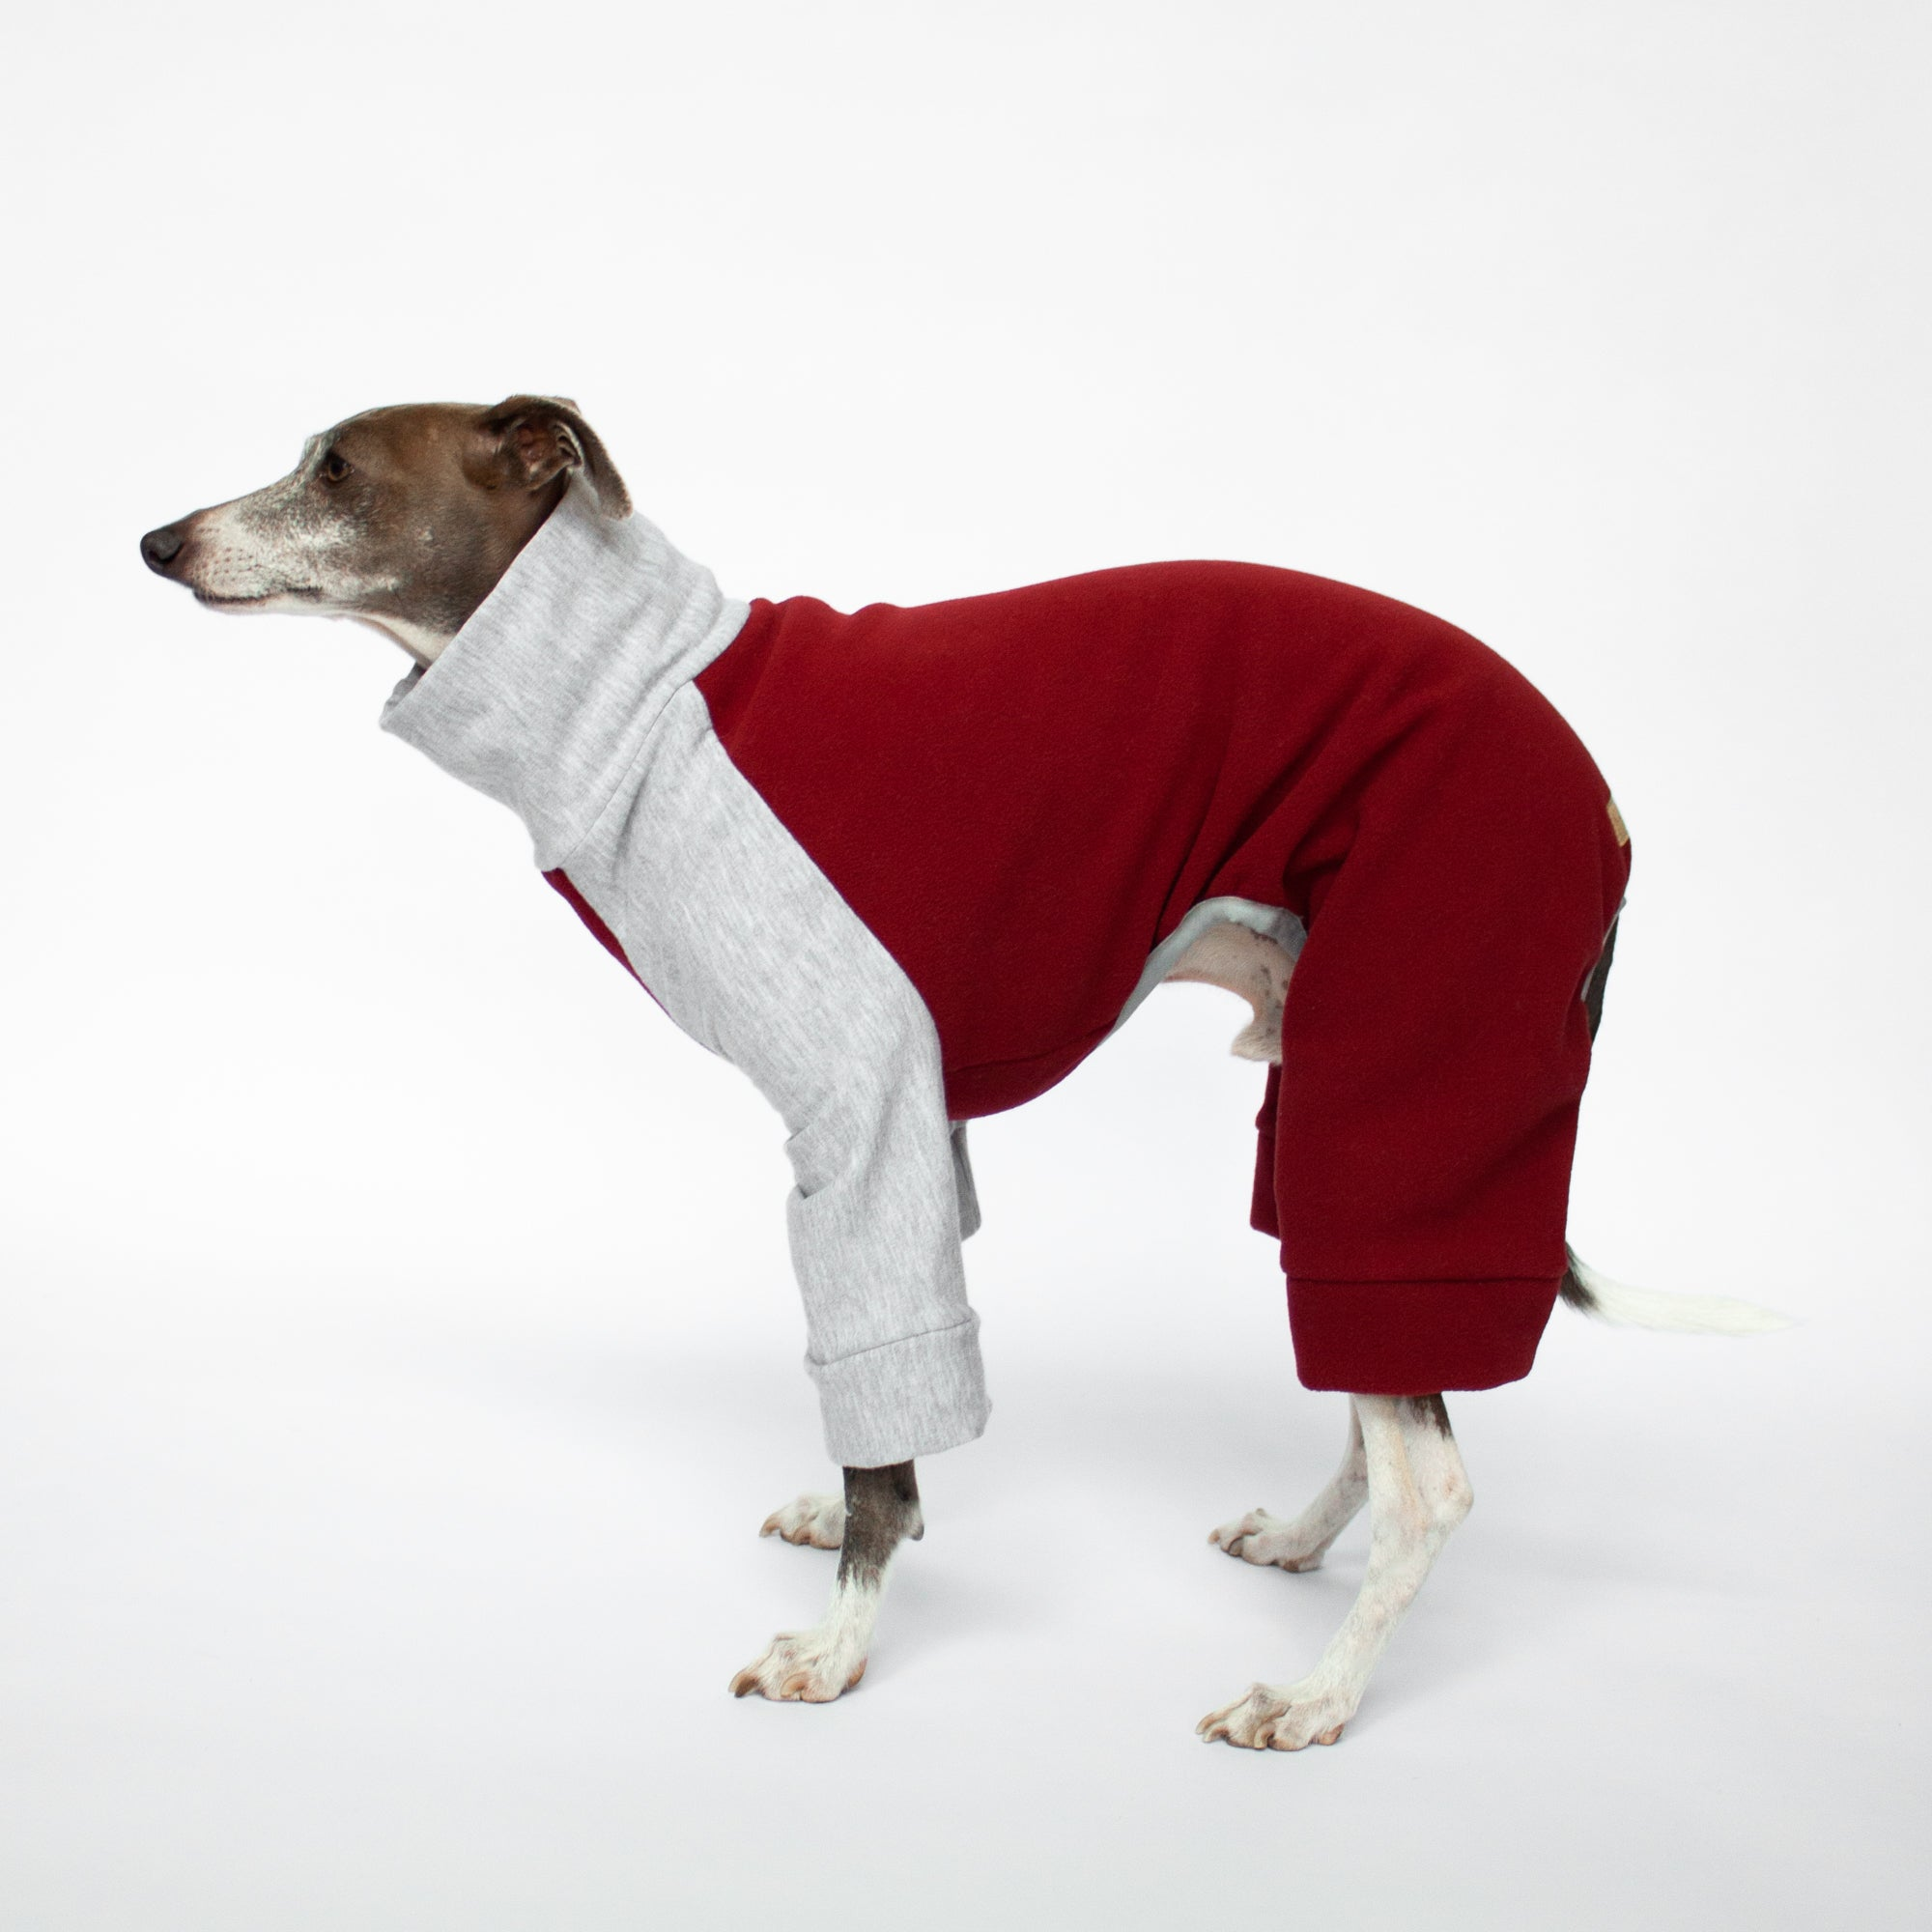 italian greyhound standing in red and grey fleece dog pajamas